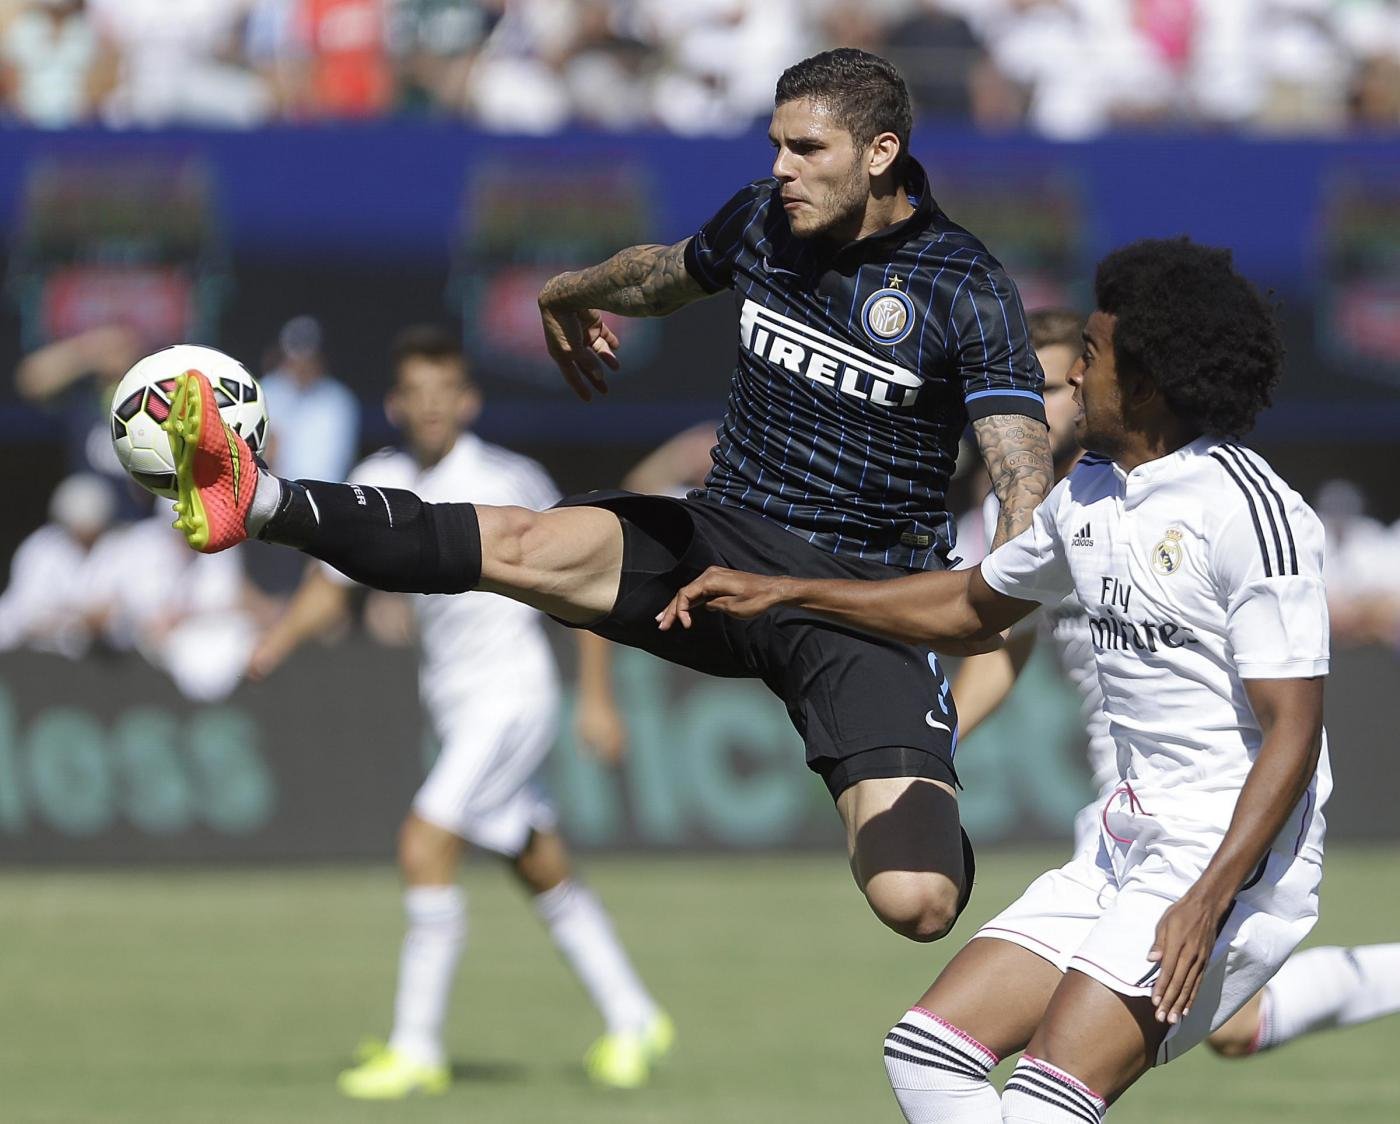 Inter batte Real Madrid 4-3 ai rigori nella Guinness Cup